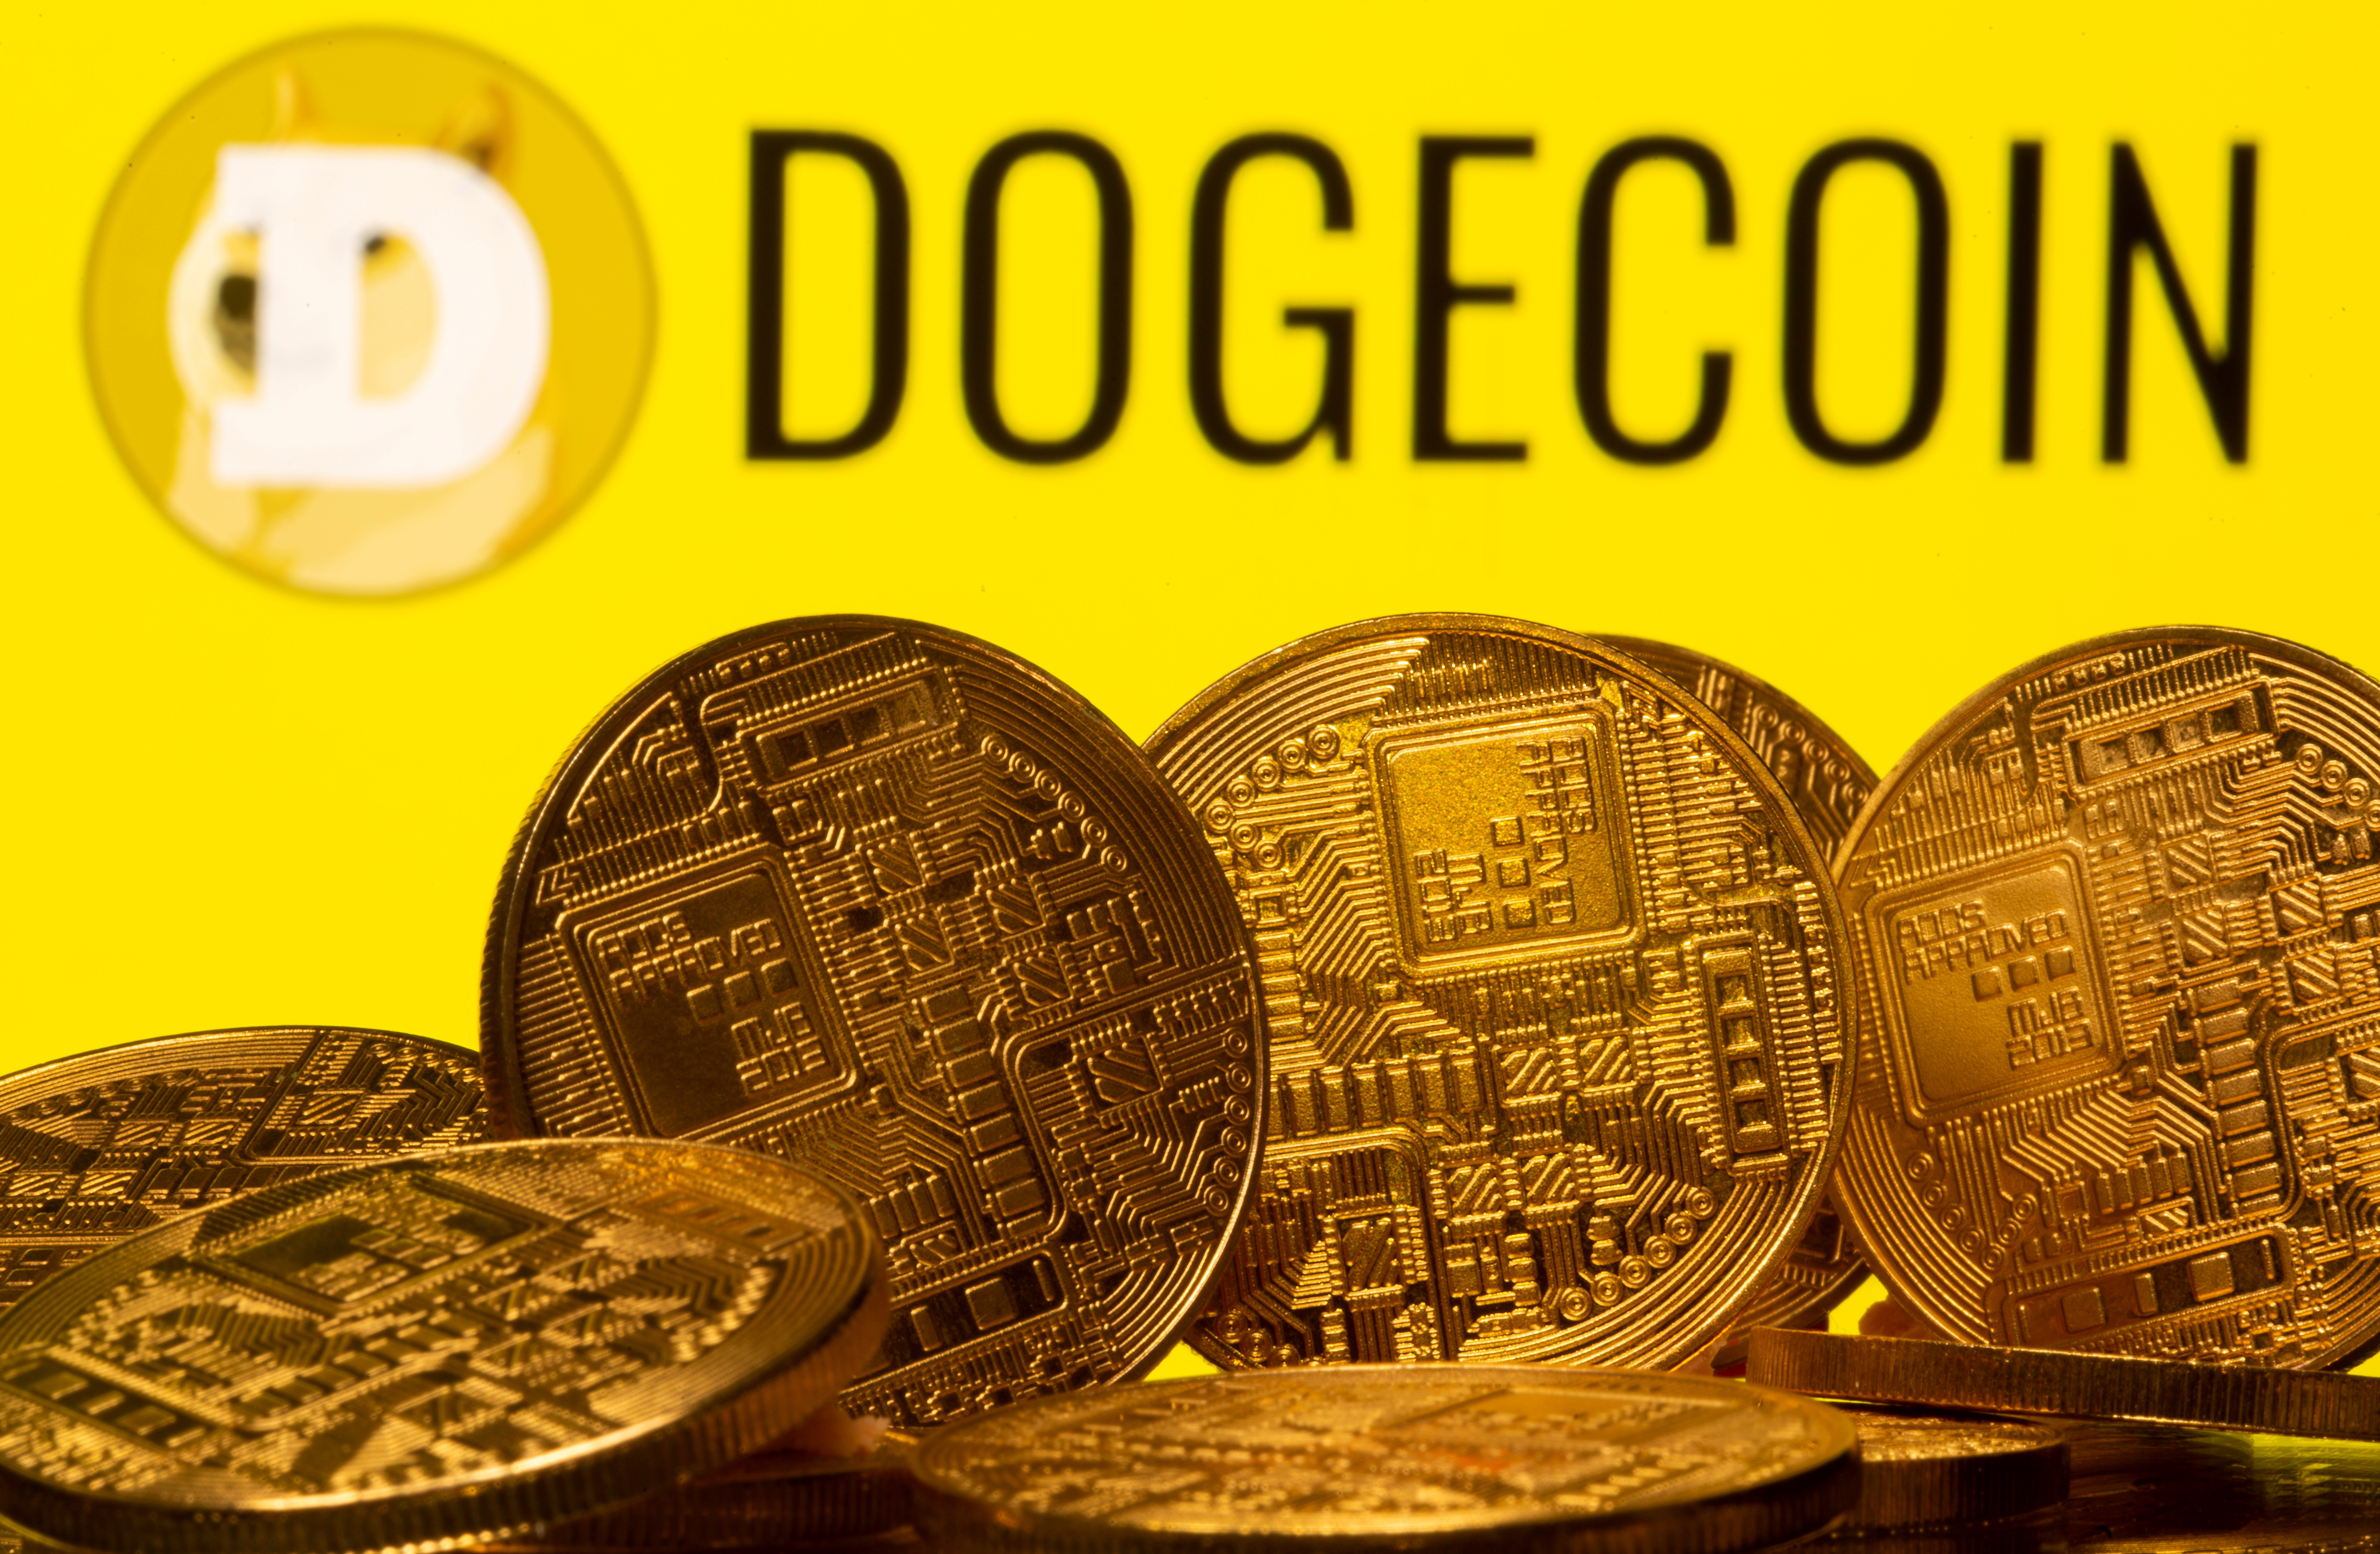 Cryptocurrency representations are seen in front of the Dogecoin logo in this illustration picture taken April 20, 2021. REUTERS/Dado Ruvic/Illustration/File Photo